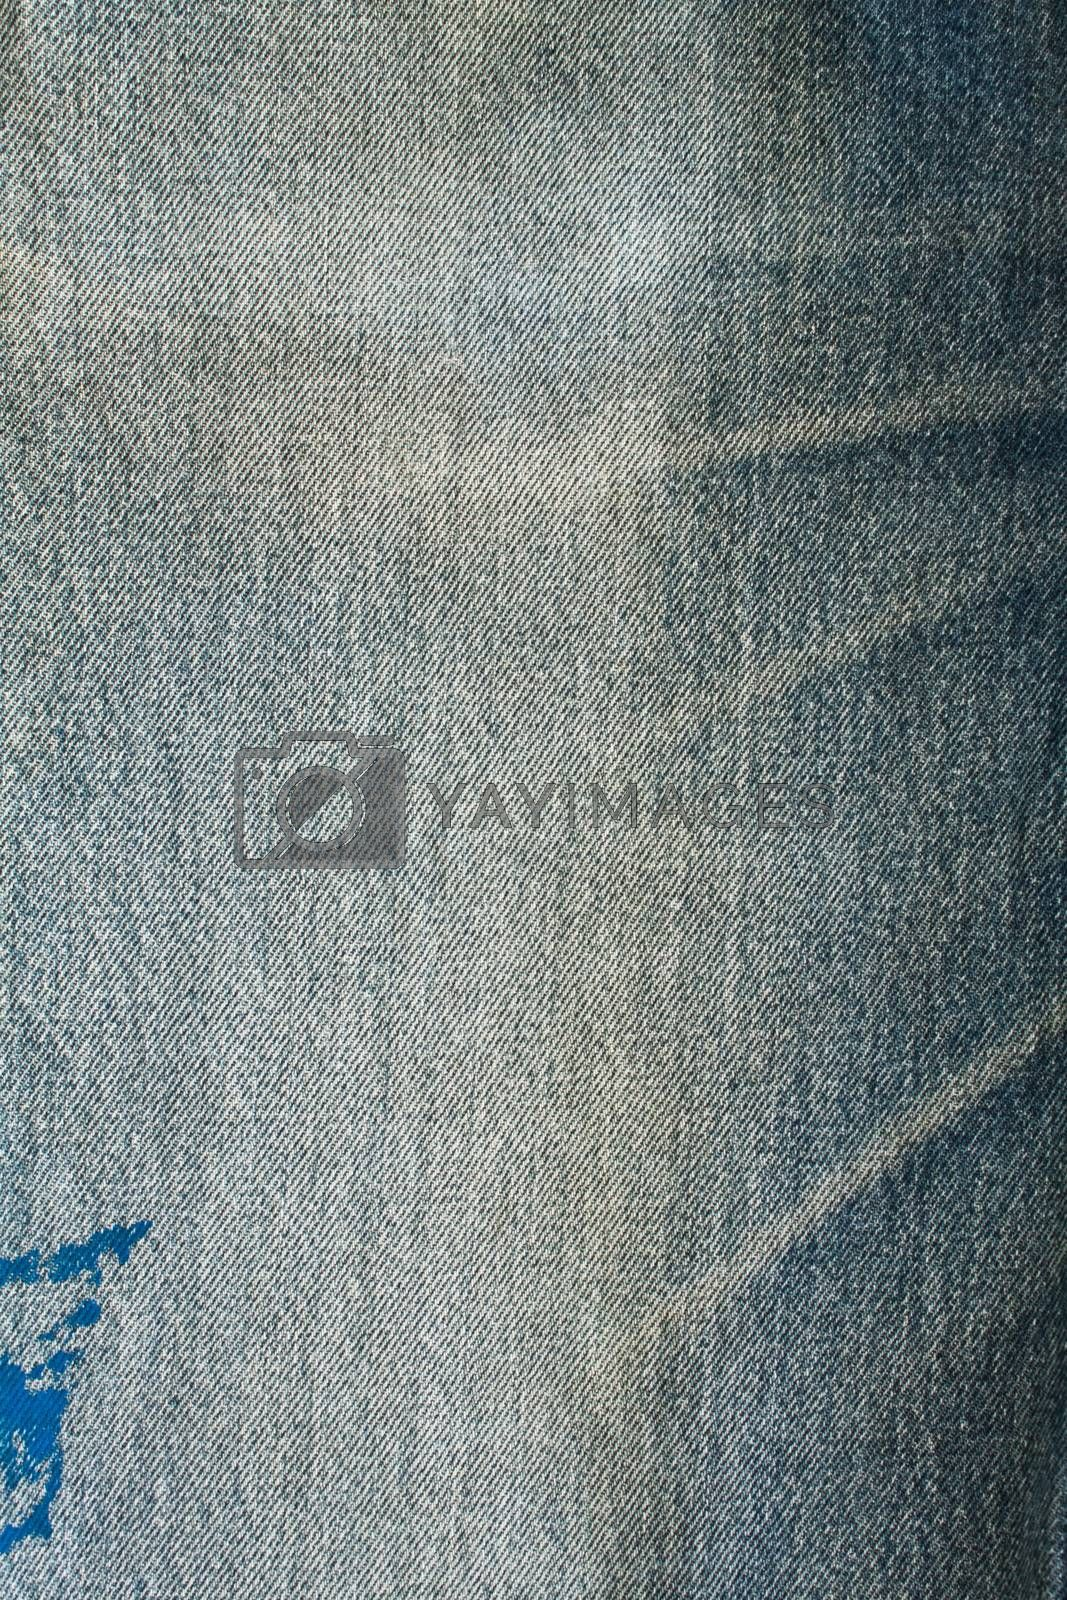 texture of  modern jeans with pocket, can be used as a background